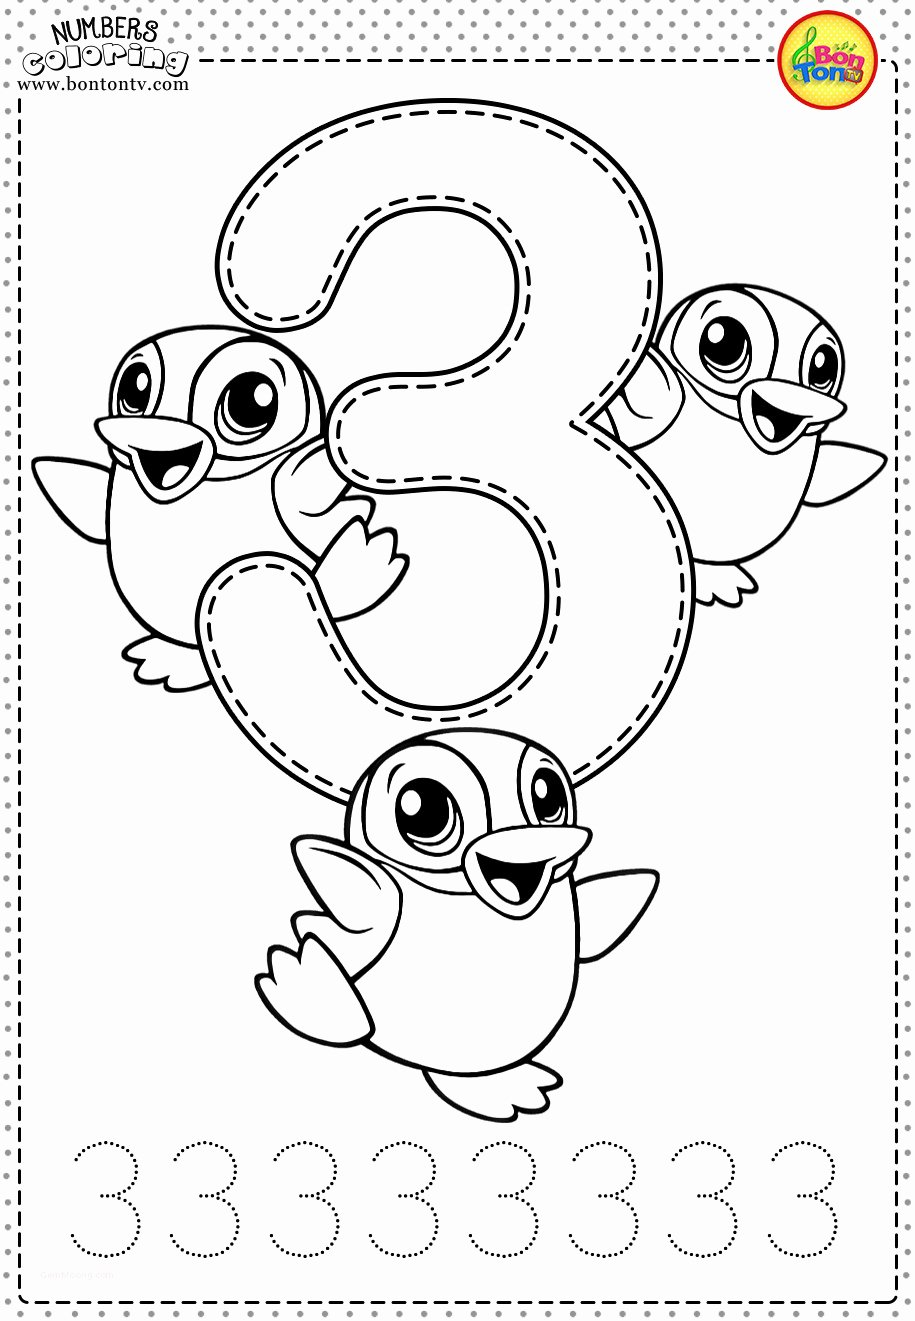 Free Coloring Worksheets for Preschoolers New Coloring Pages Free Coloring Pages for Preschoolers Free